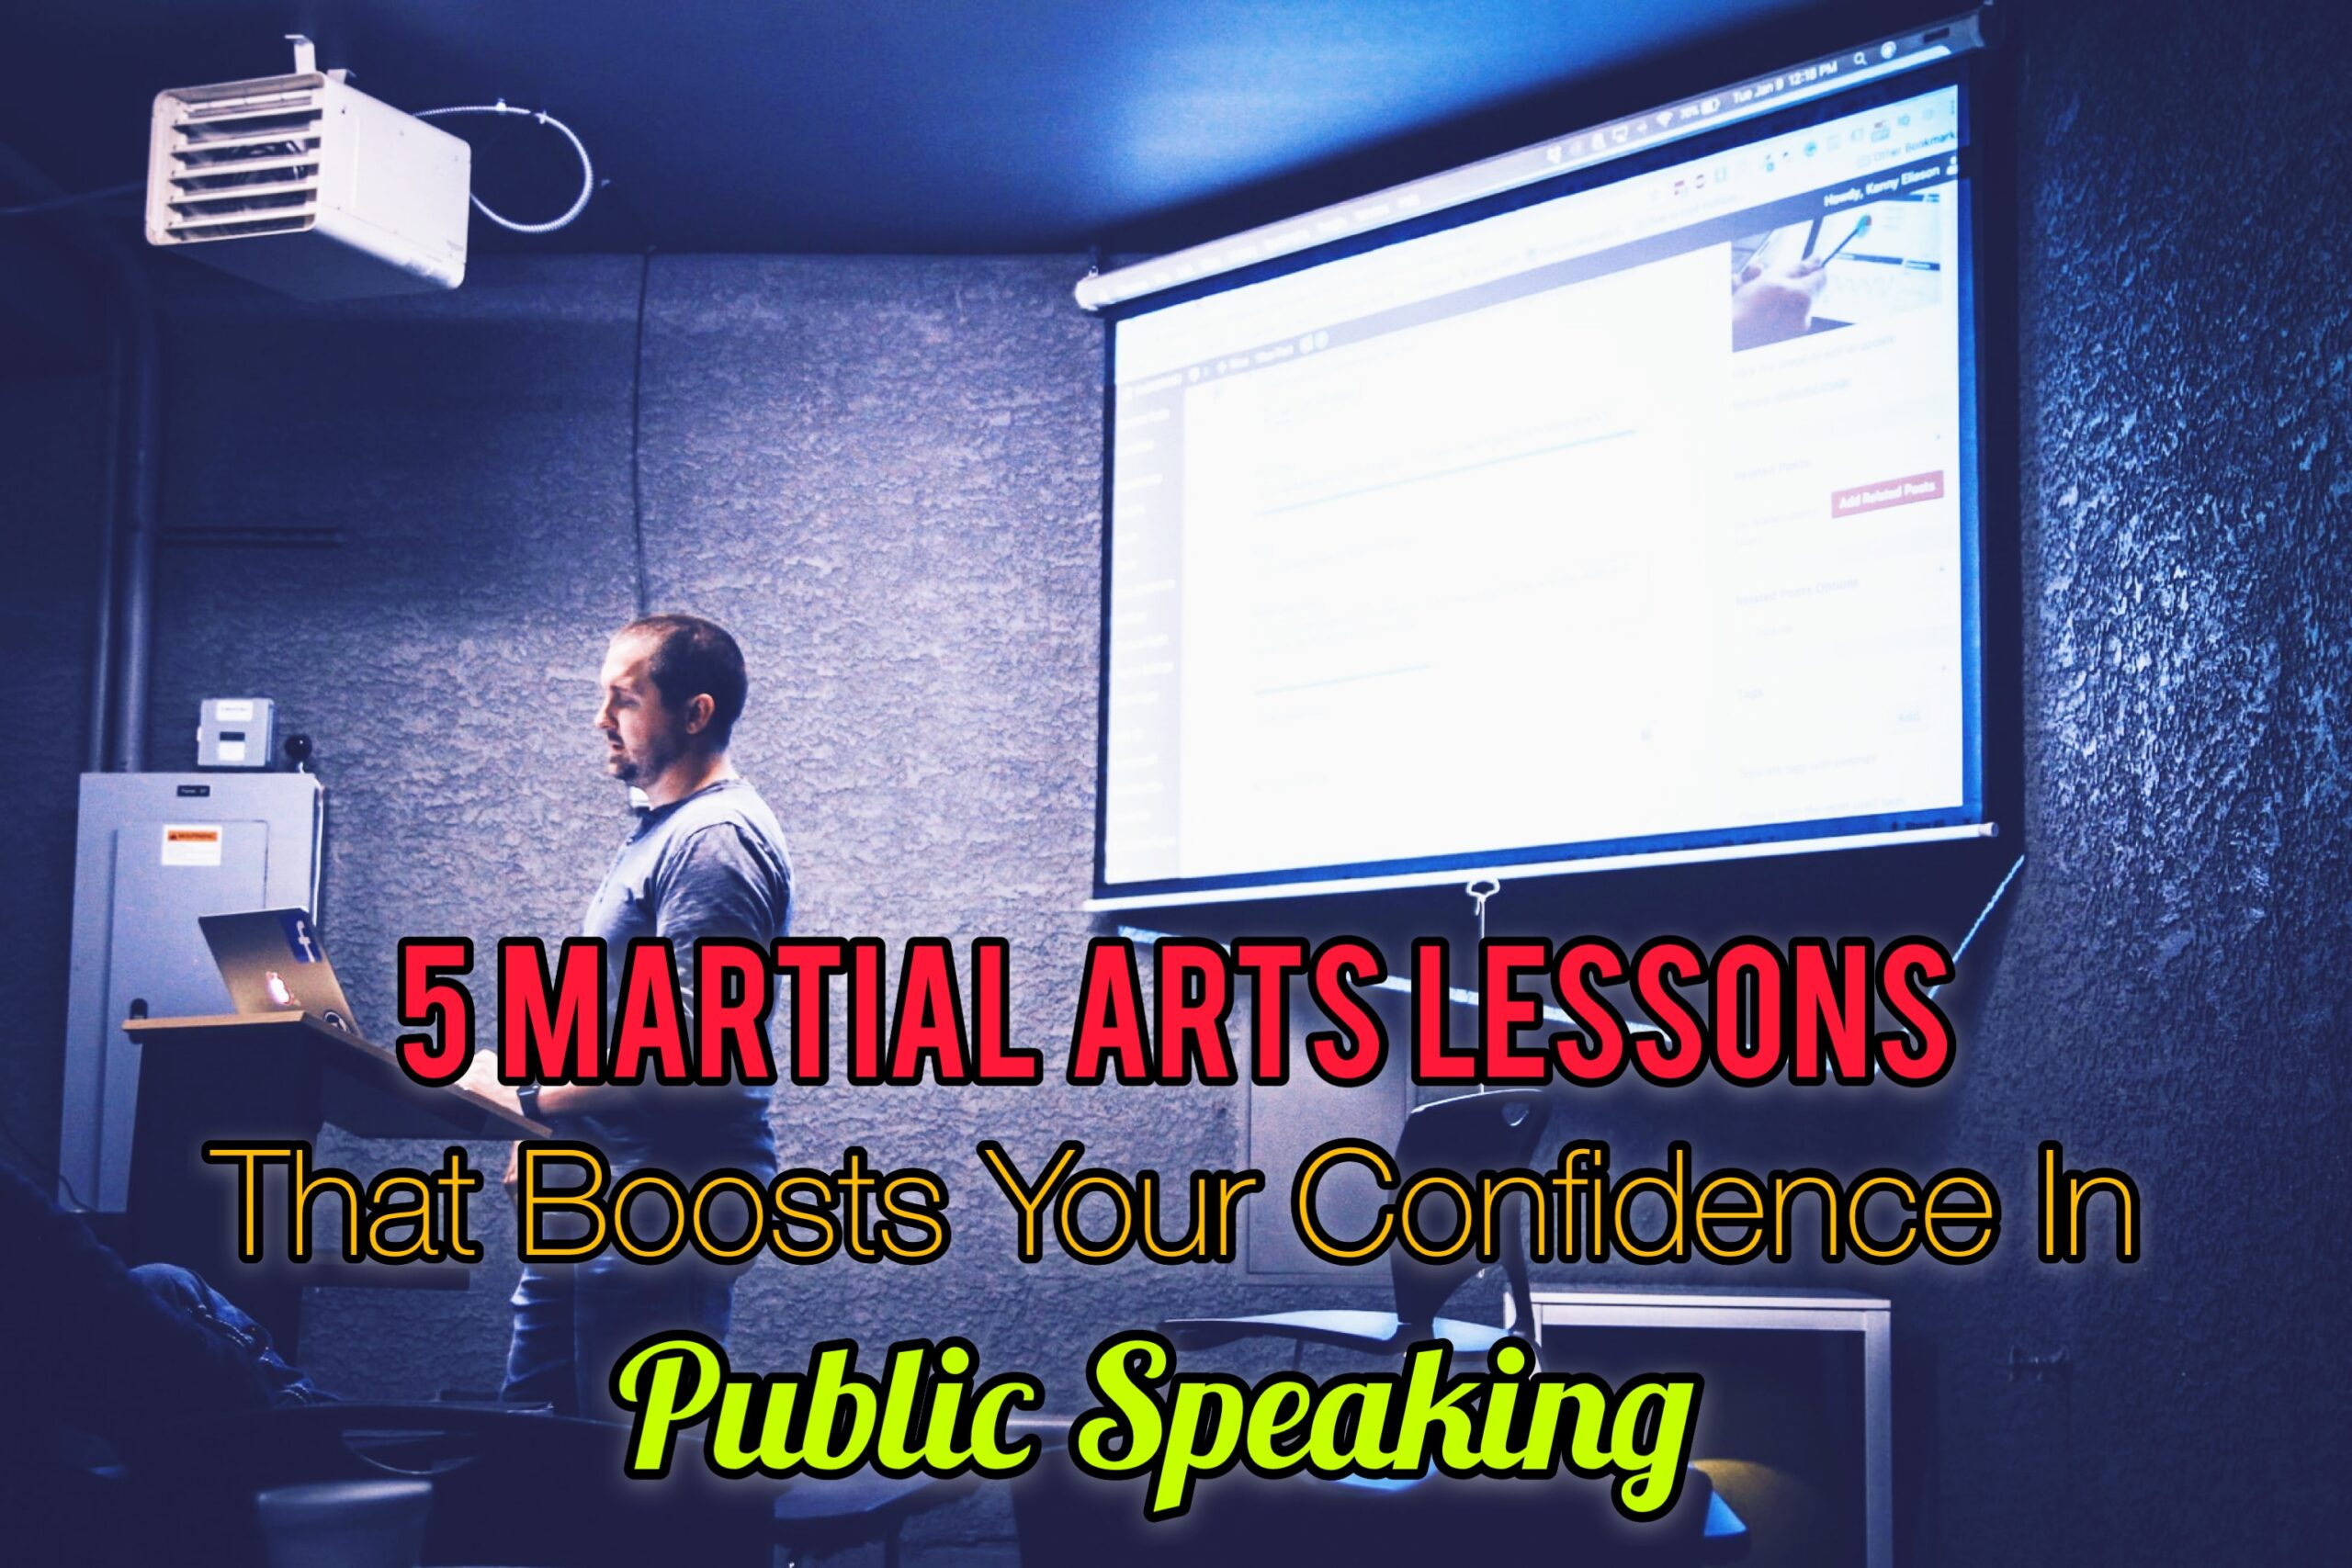 Public Speaking | 5 Martial Art Lessons That Boosts Confidence For It